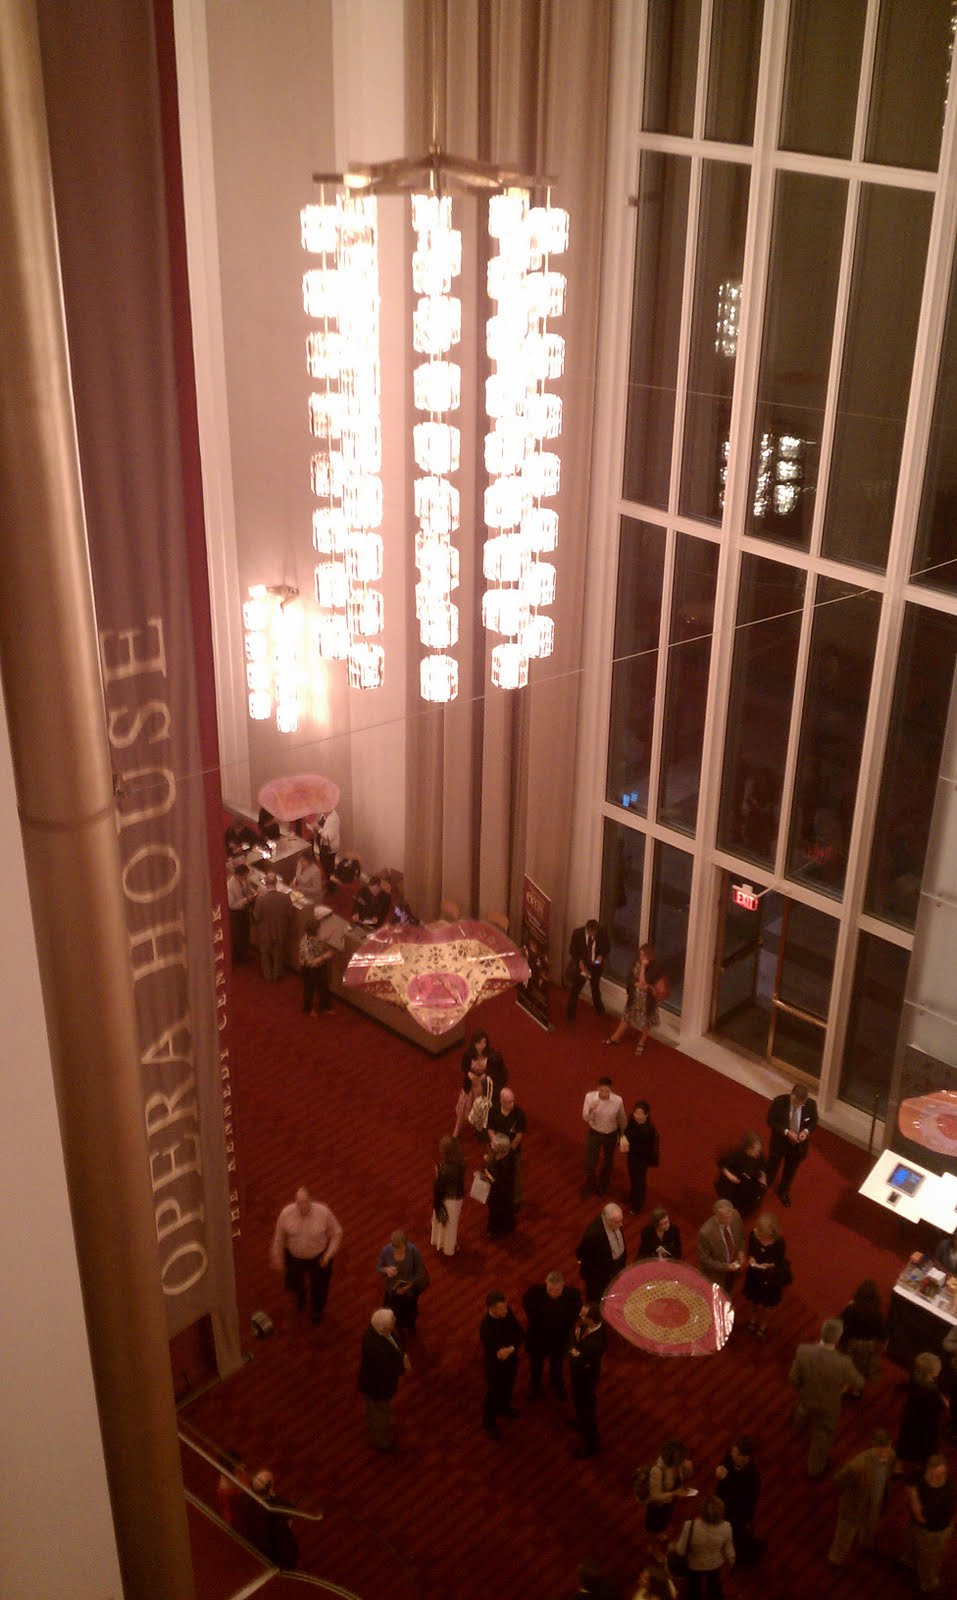 Grand Foyer Kennedy Center : Architect design™ an evening at the kennedy center